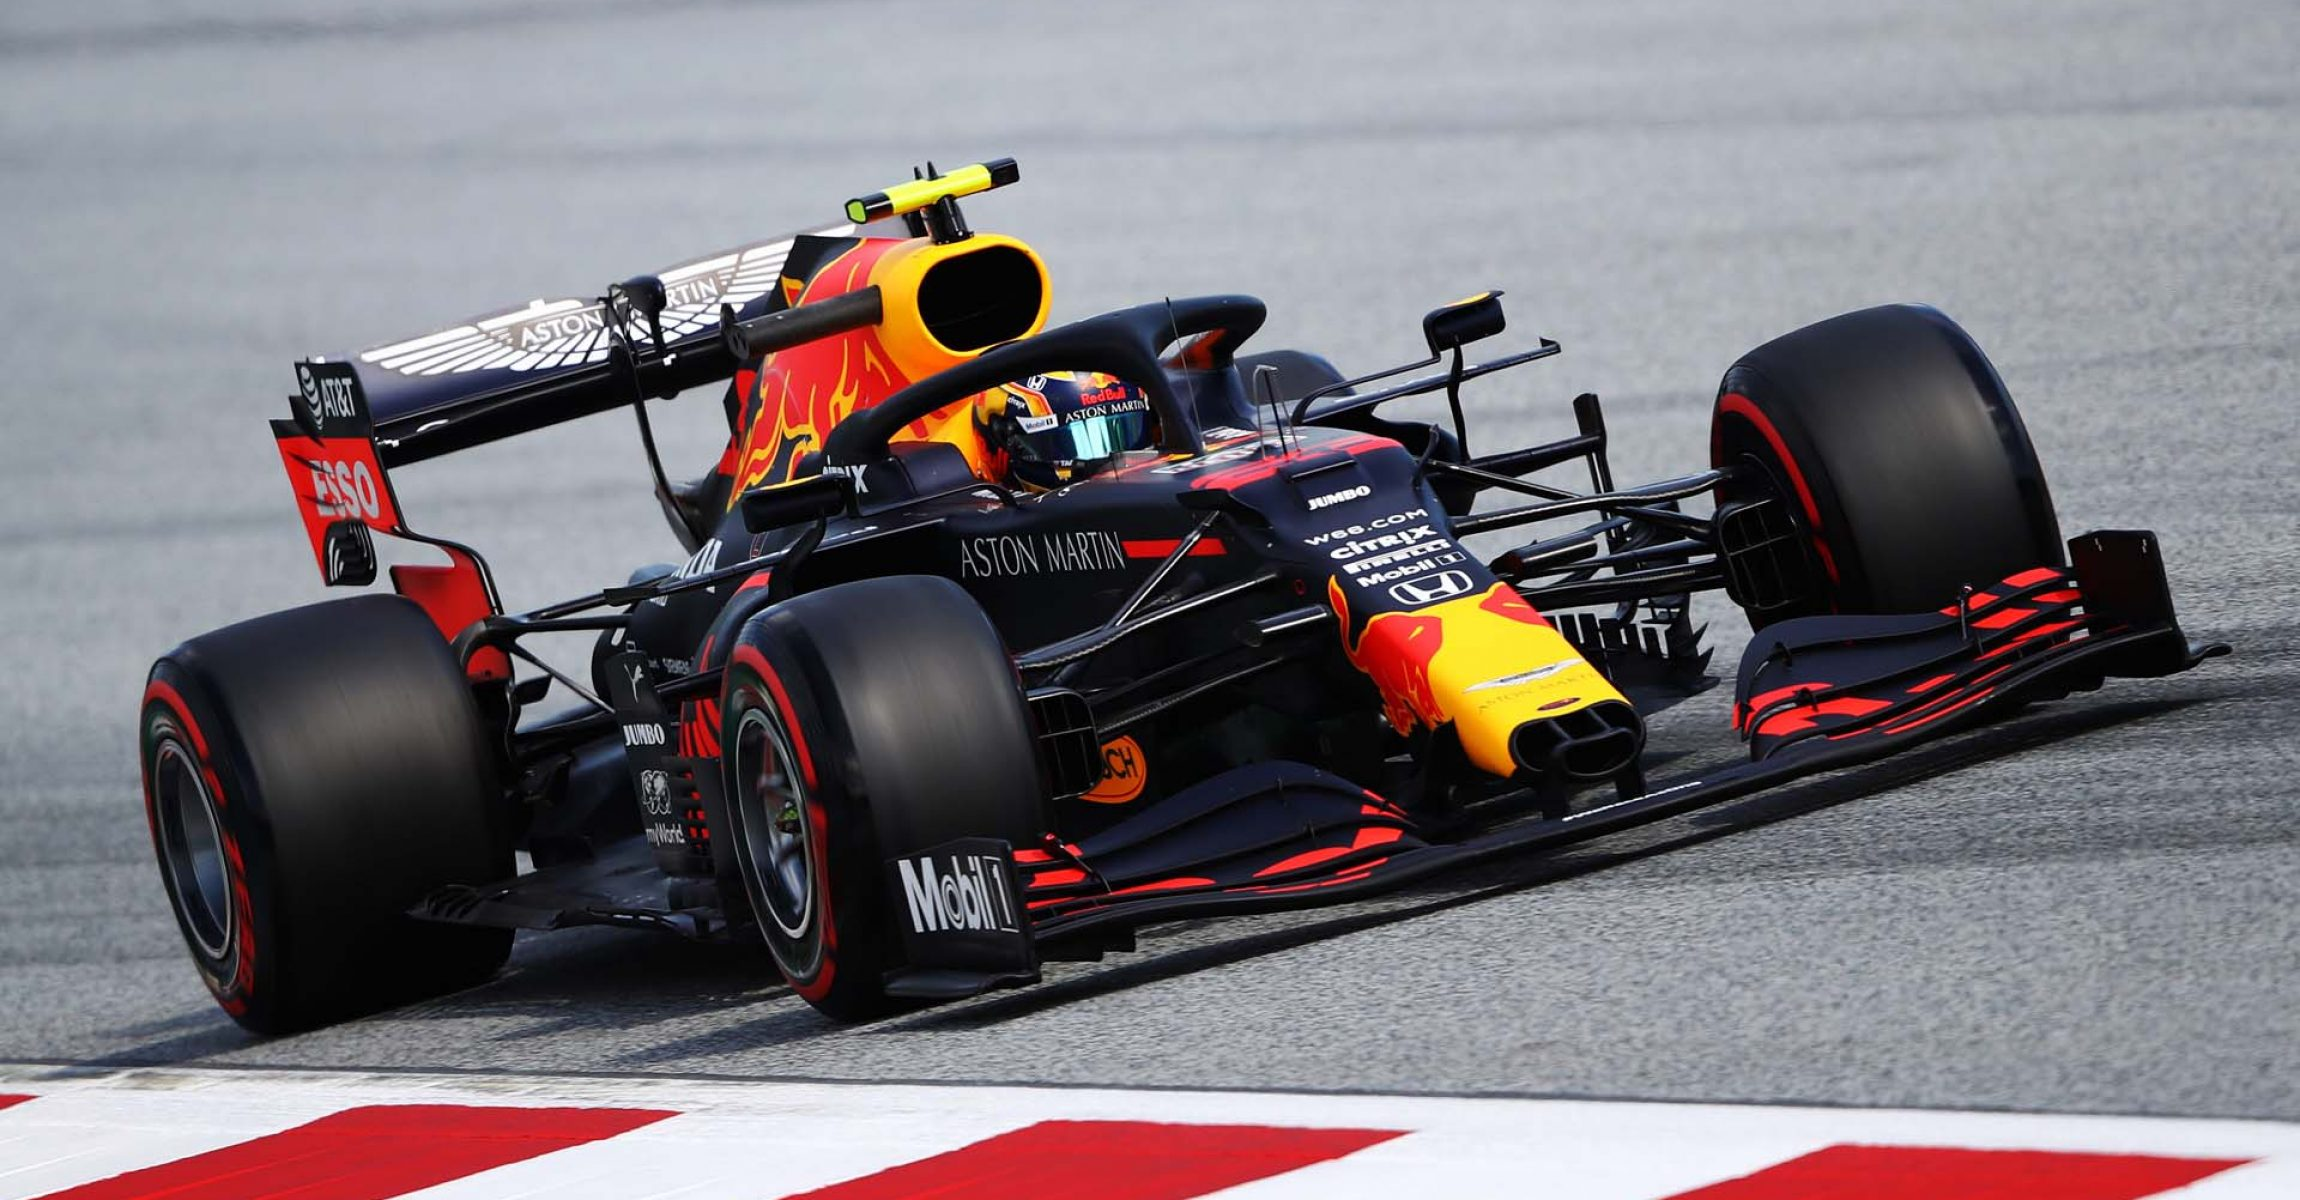 SPIELBERG, AUSTRIA - JULY 10: Alexander Albon of Thailand driving the (23) Aston Martin Red Bull Racing RB16 on track during practice for the F1 Grand Prix of Styria at Red Bull Ring on July 10, 2020 in Spielberg, Austria. (Photo by Bryn Lennon/Getty Images) // Getty Images / Red Bull Content Pool // AP-24KAPCZVD2111 // Usage for editorial use only //